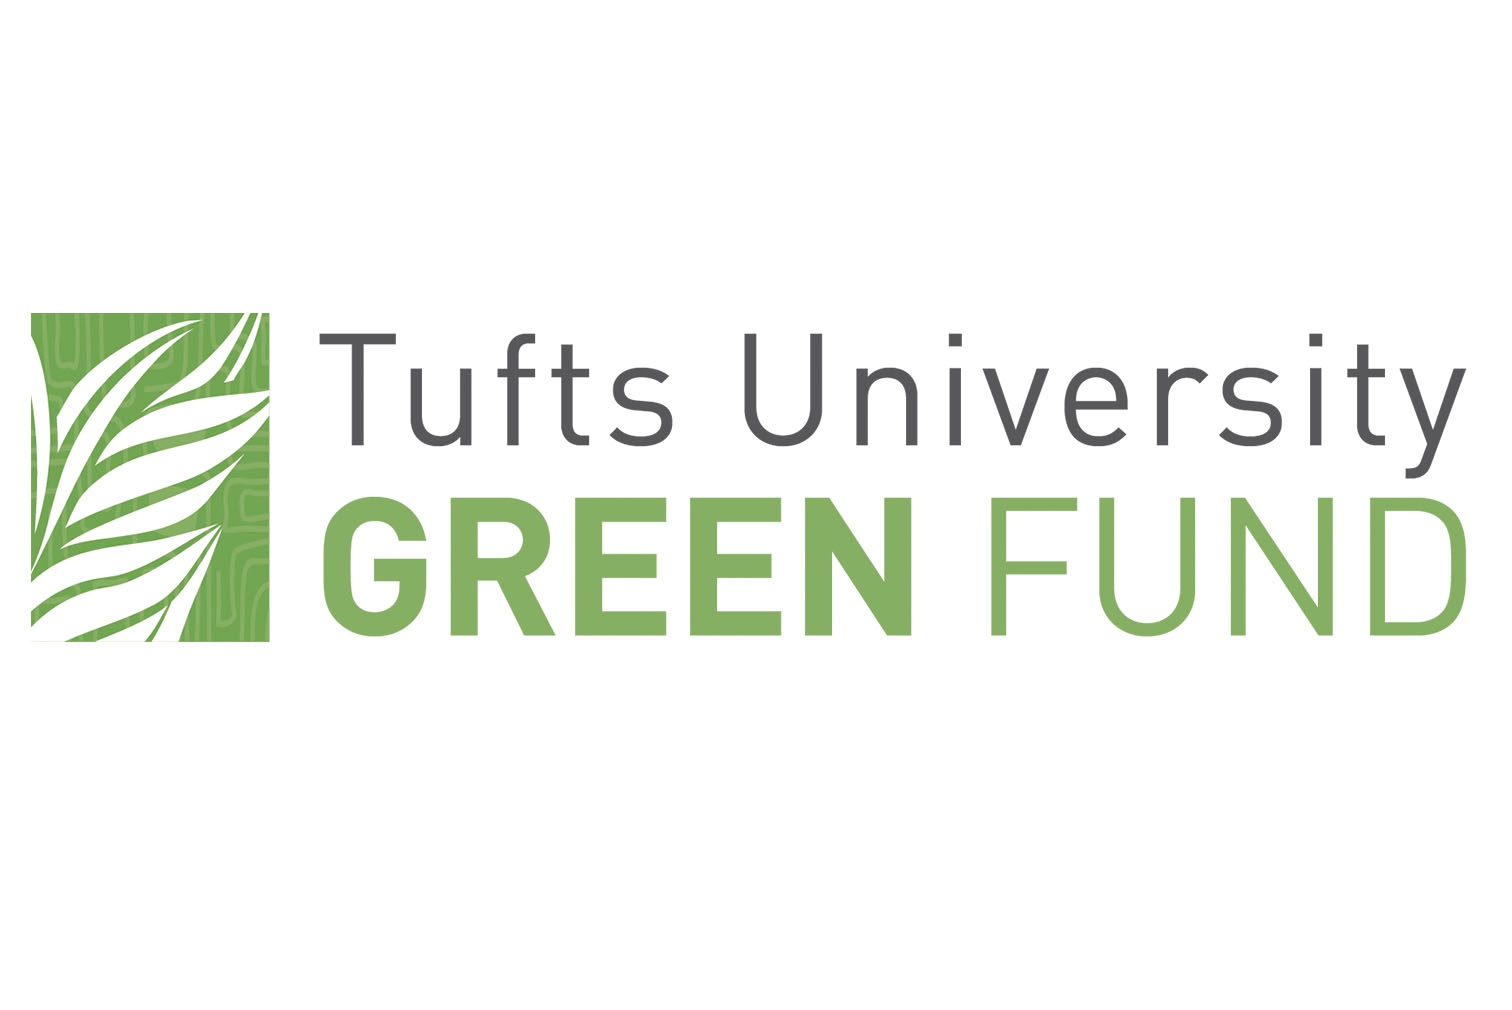 Tufts University Green Fund Logo